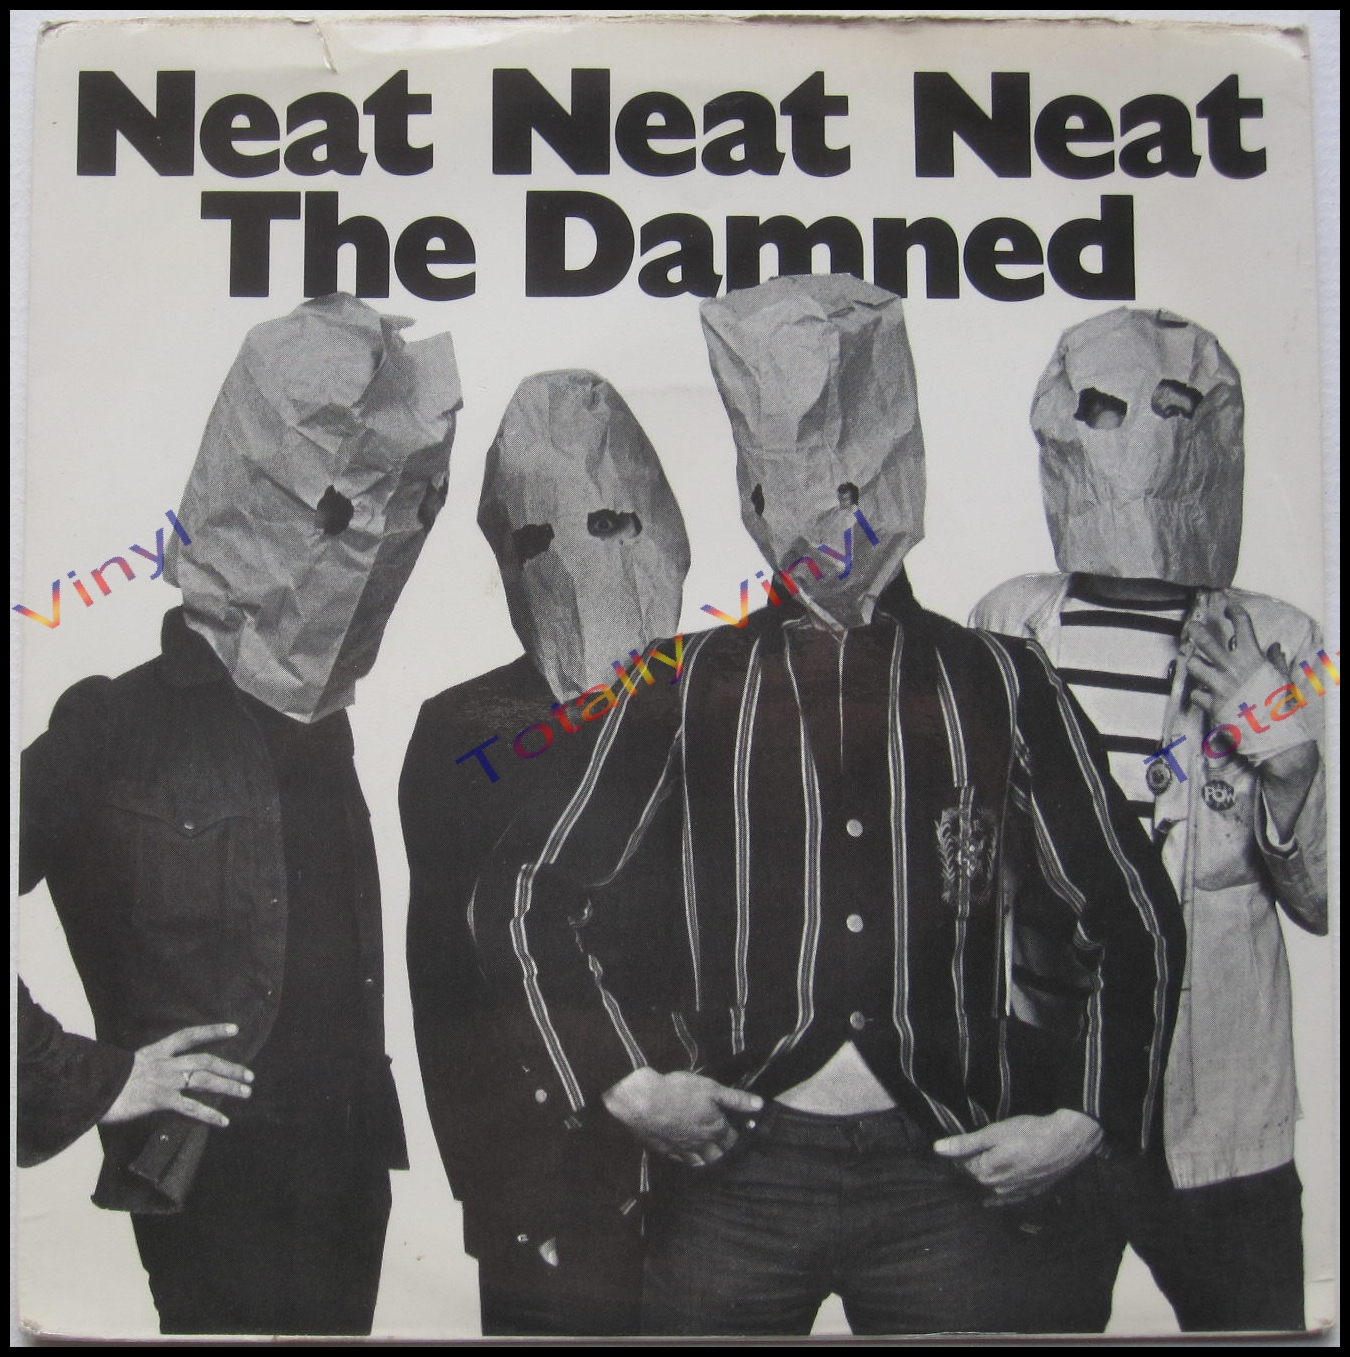 Totally Vinyl Records Damned The Neat Neat Neat